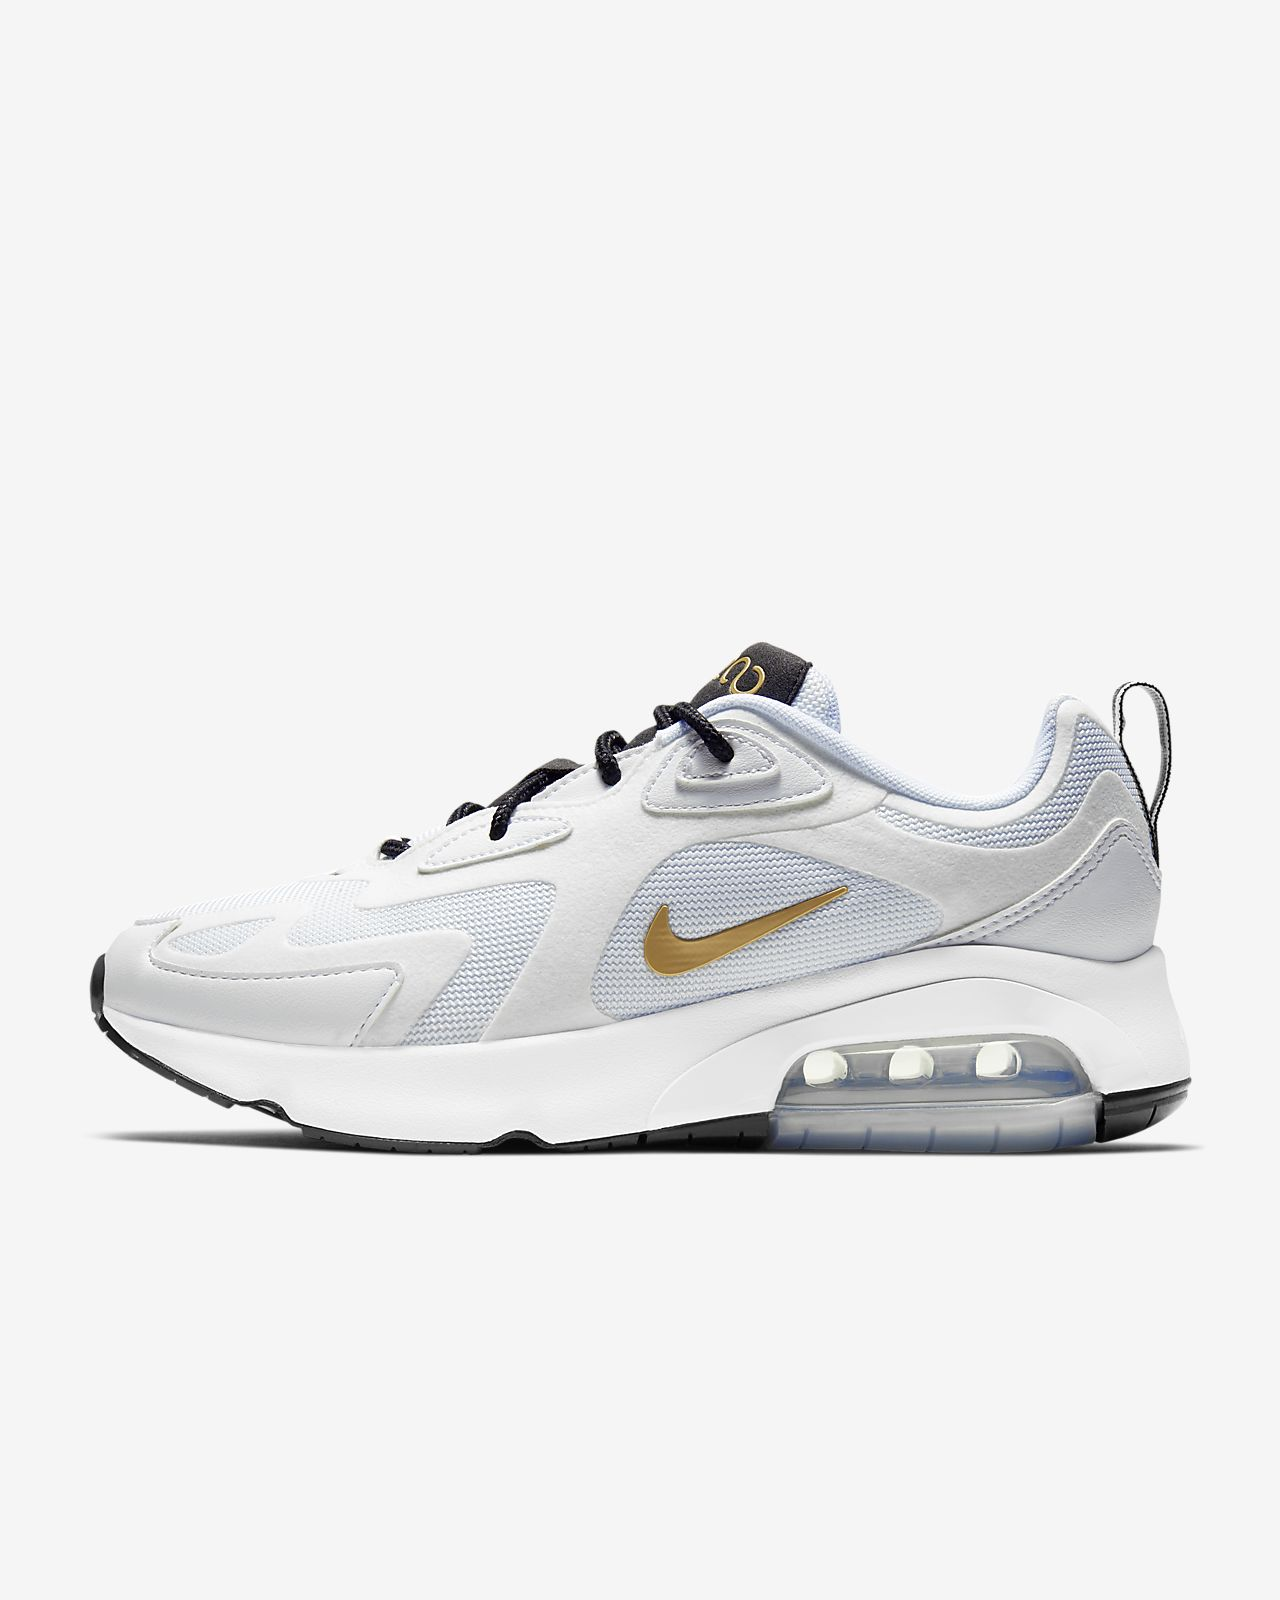 nike air max 1 id women's shoe nz|Free delivery!